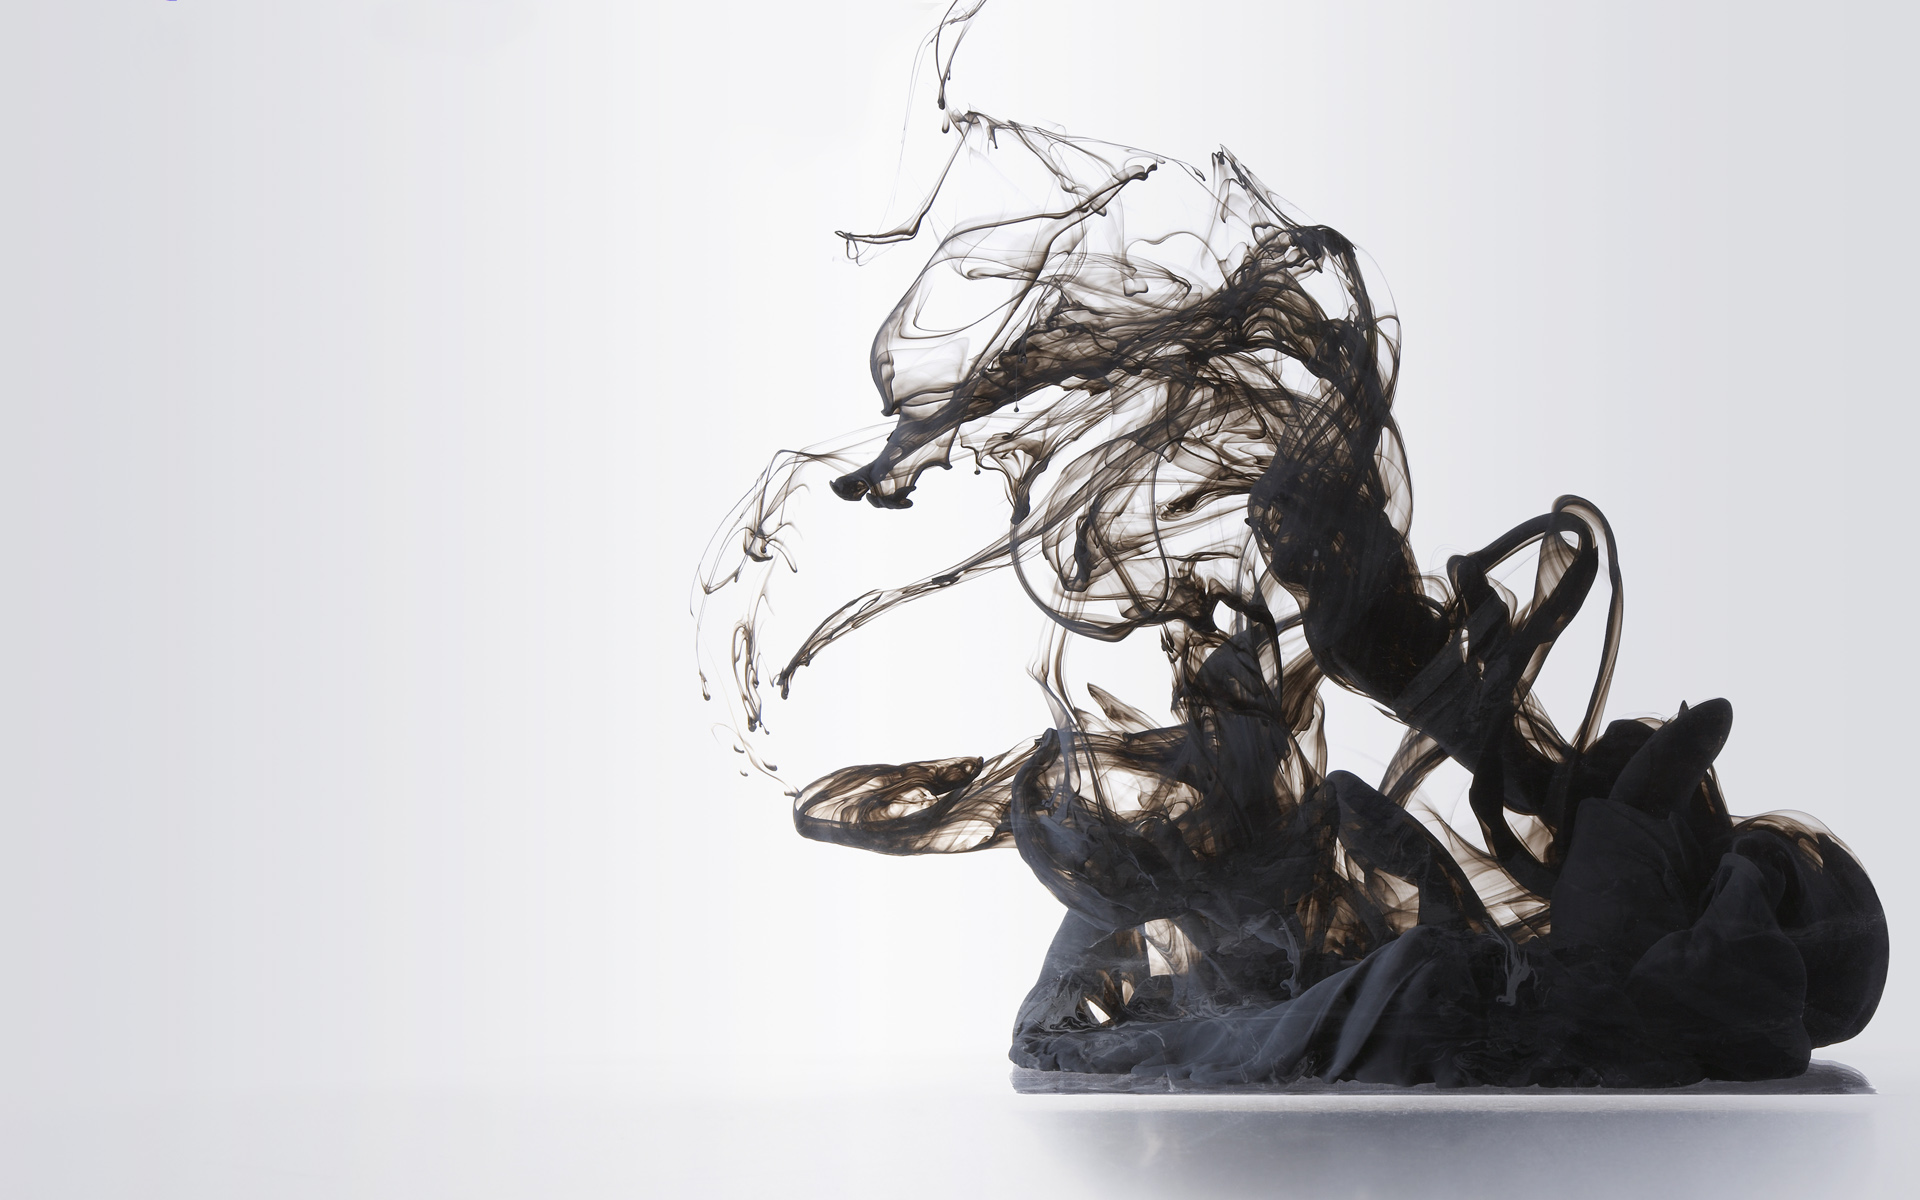 Epic Abstract Ink In Water Hq 464863 Wallpaper wallpaper